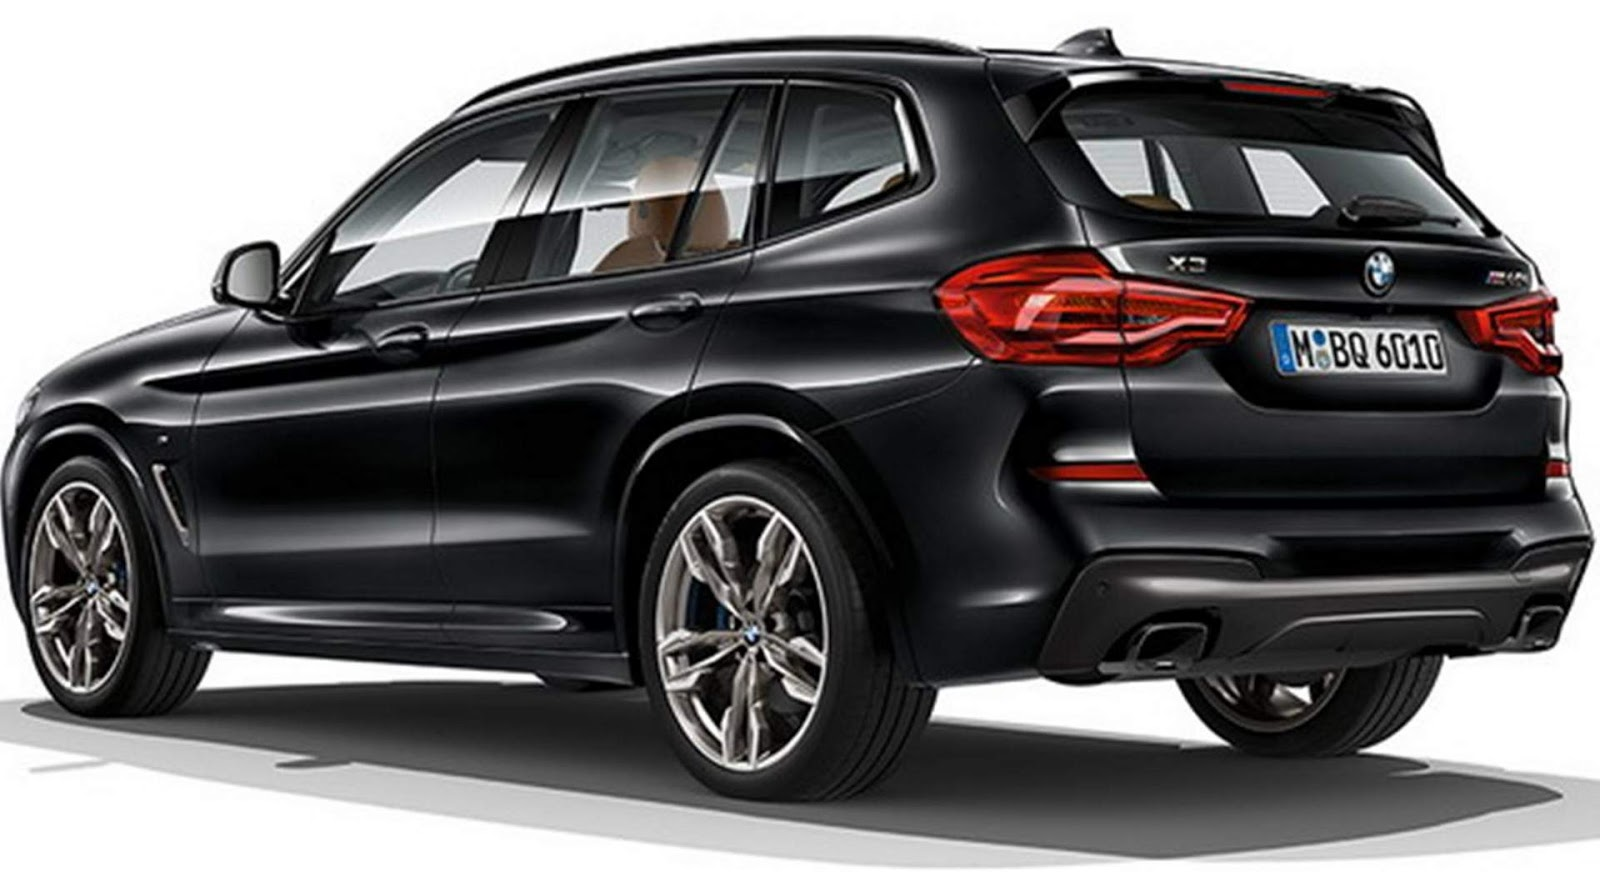 novo bmw x3 2018 v deo fotos e especifica es oficiais. Black Bedroom Furniture Sets. Home Design Ideas